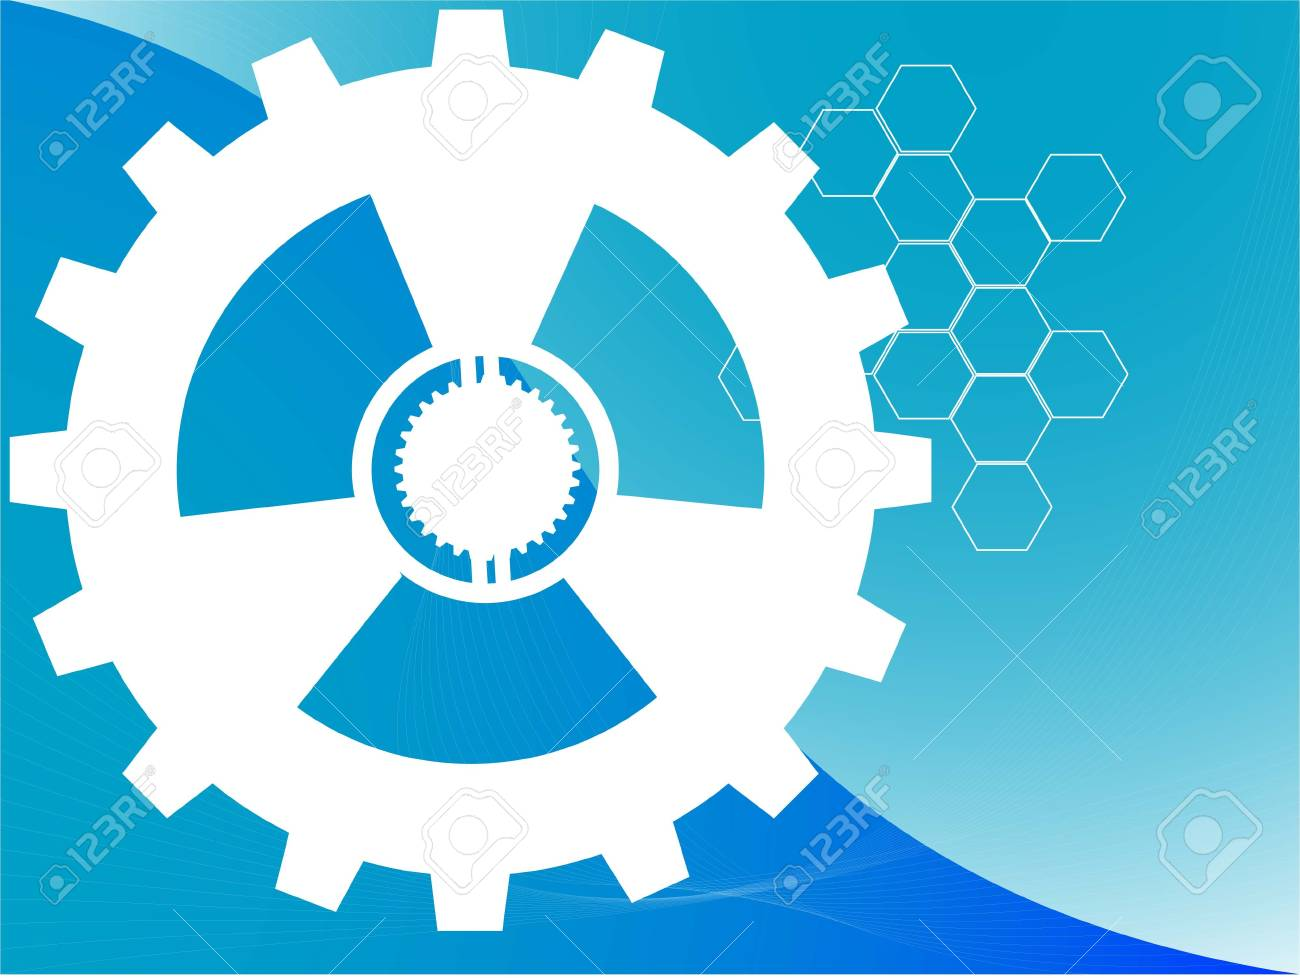 machine gear with hexagons on curvy background Stock Photo - 3311035